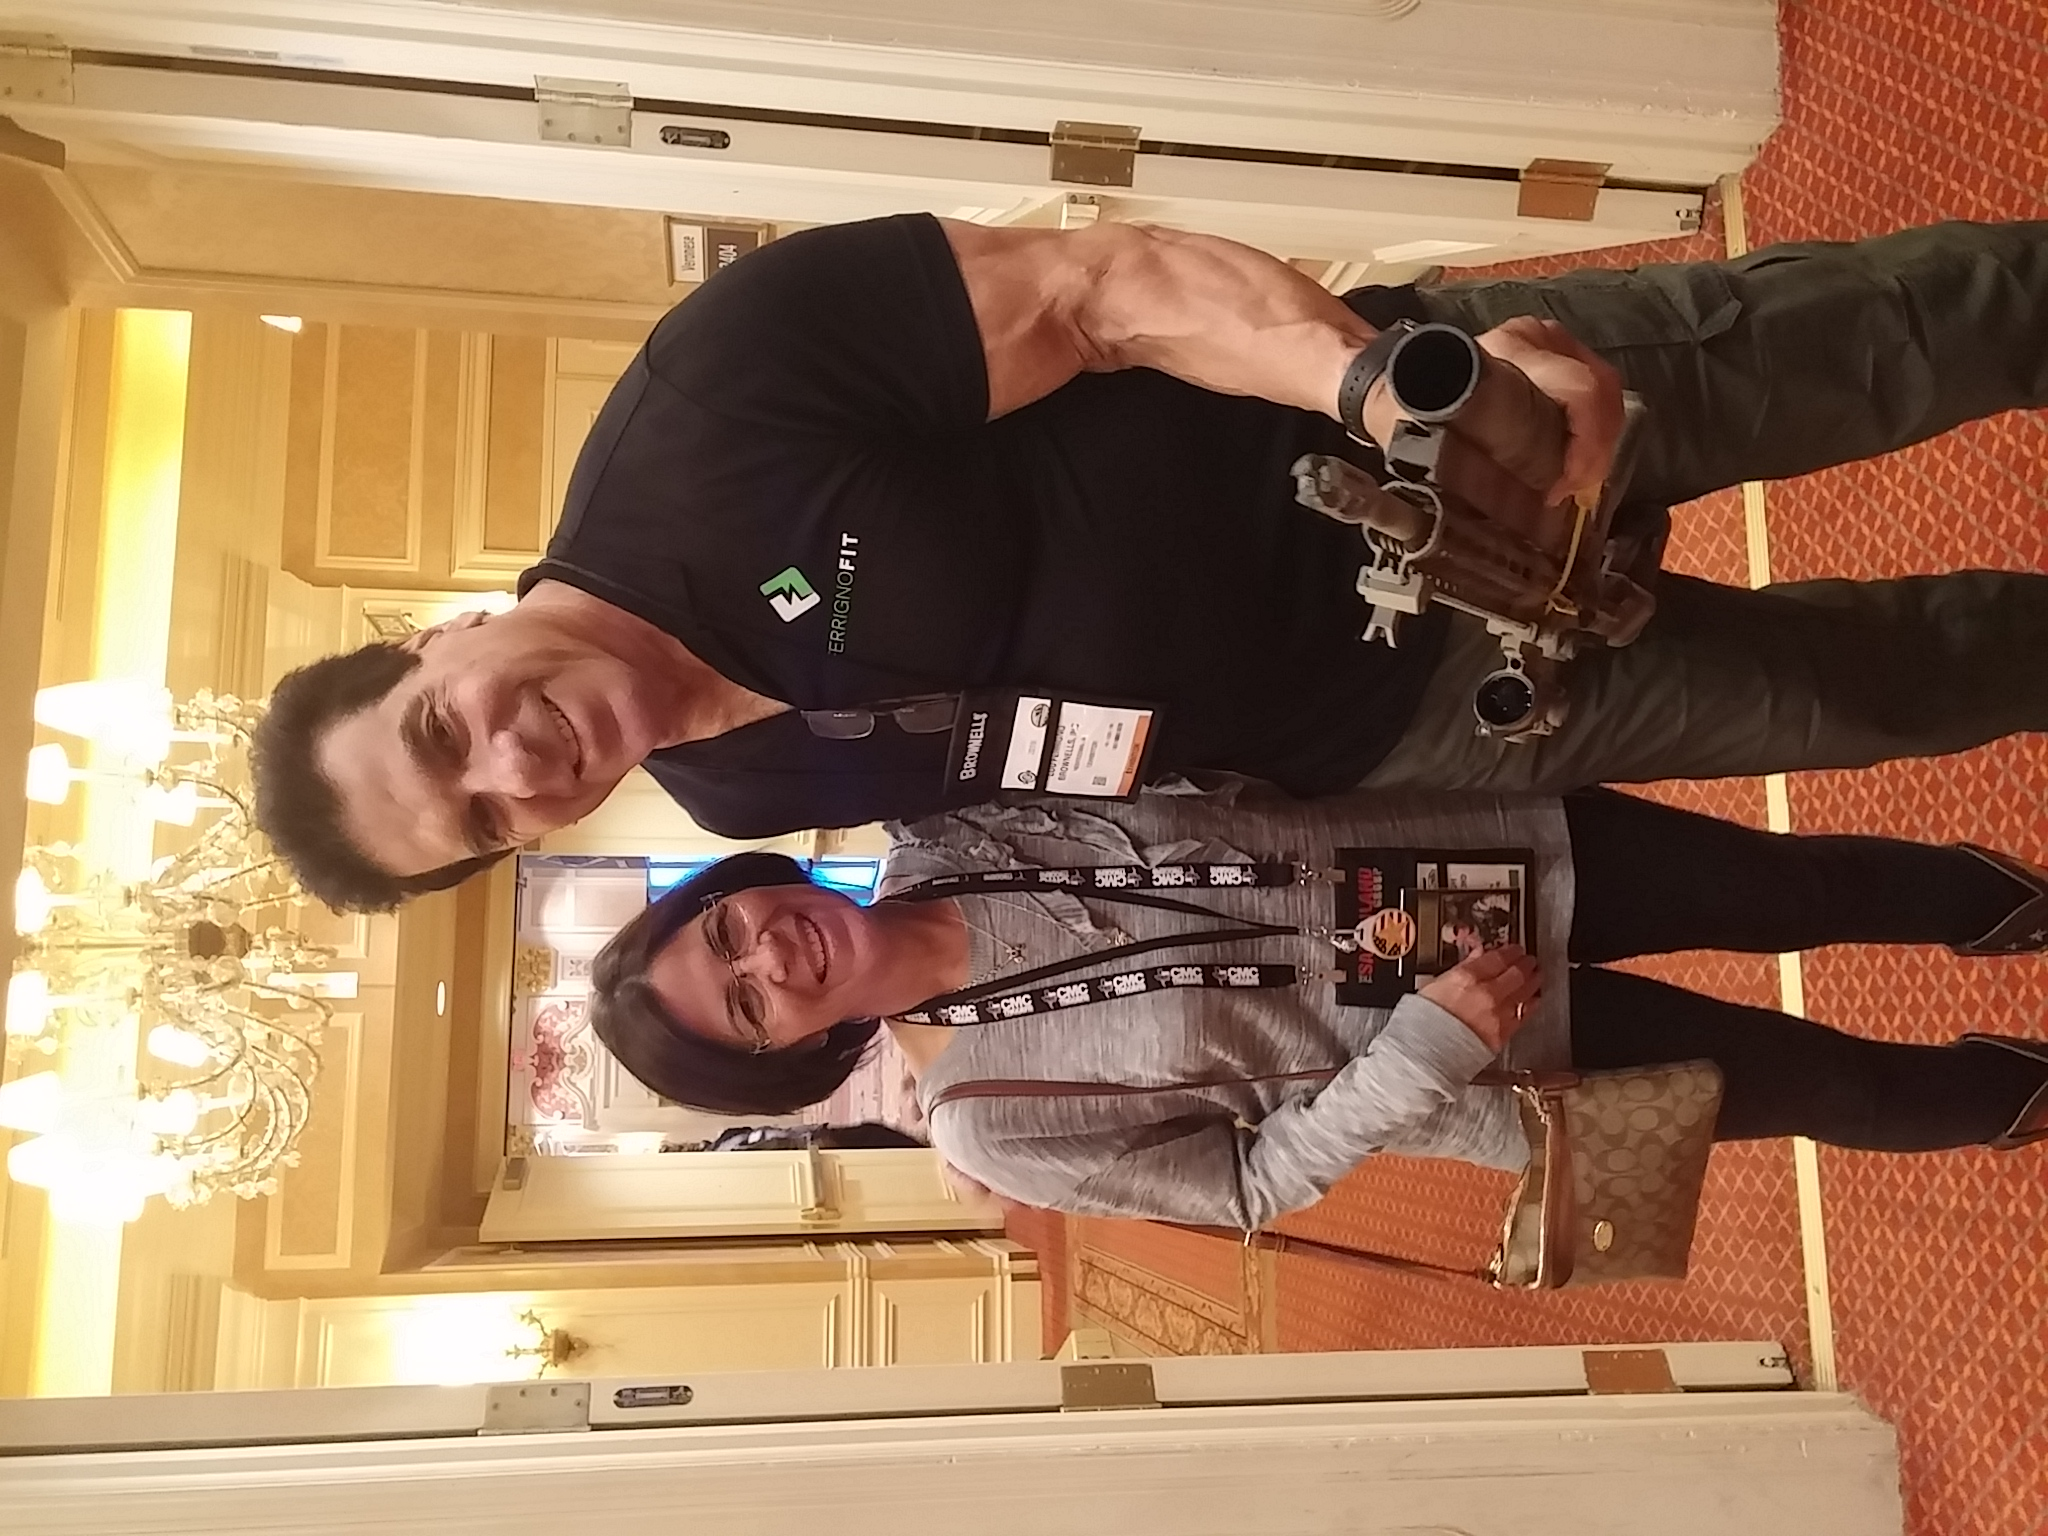 Louis Ferrigno and Cindy holding Dan